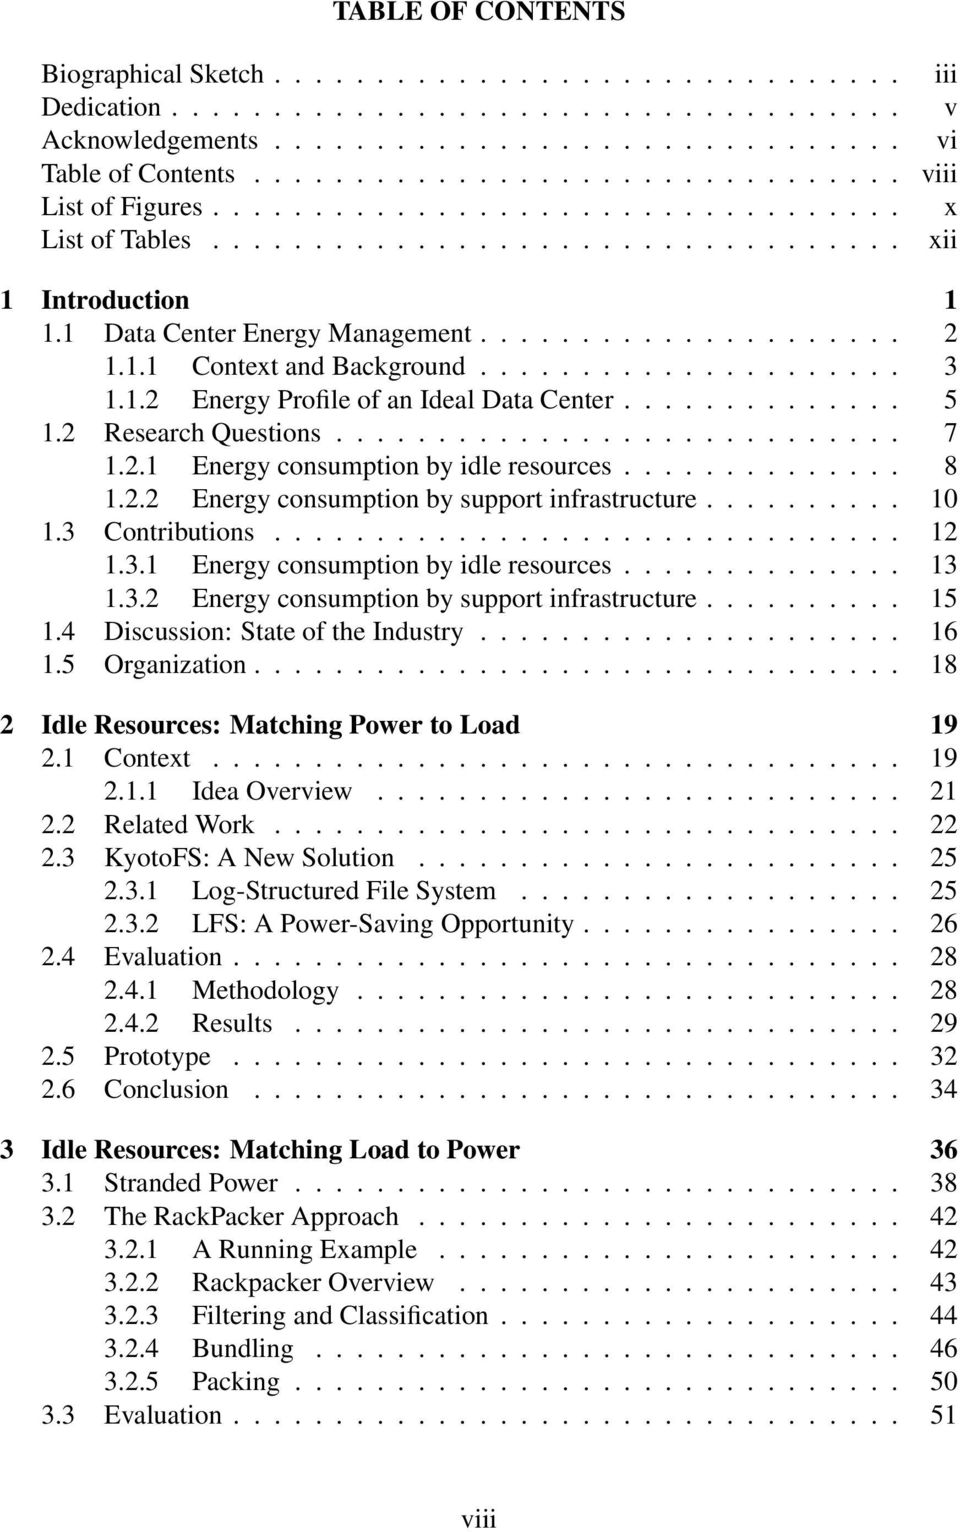 1.1 Context and Background..................... 3 1.1.2 Energy Profile of an Ideal Data Center.............. 5 1.2 Research Questions............................ 7 1.2.1 Energy consumption by idle resources.